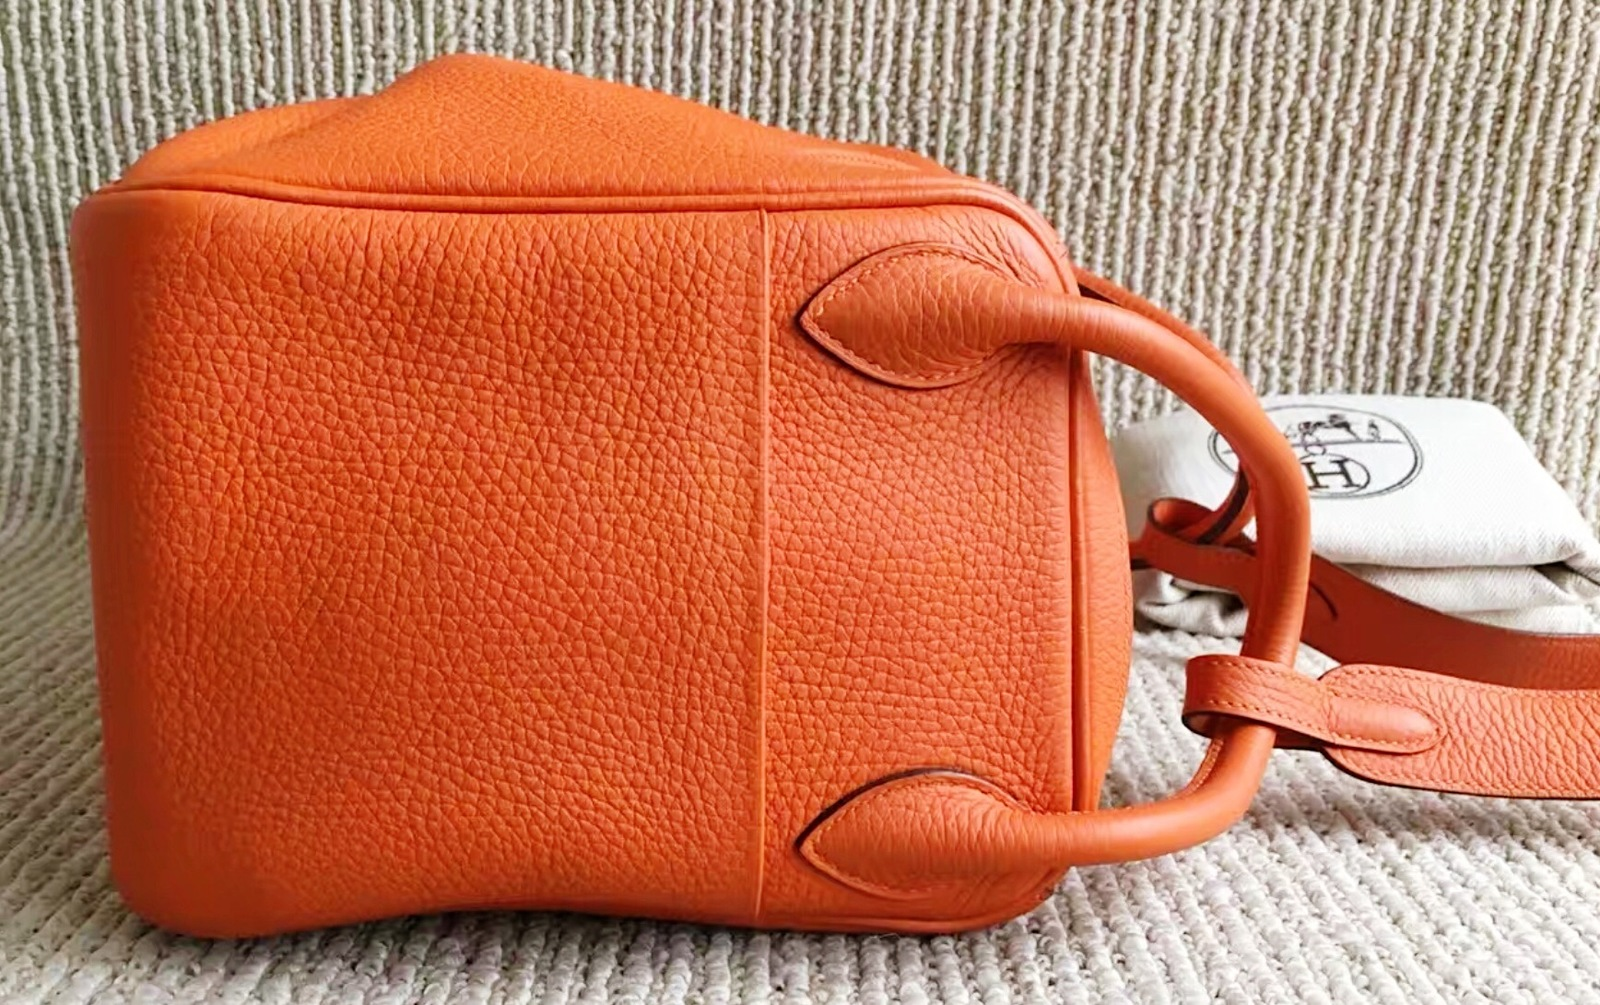 100% Authentic HERMES Taurillon Clemence Lindy 34 ORANGE Shoulder Bag PHW image 11